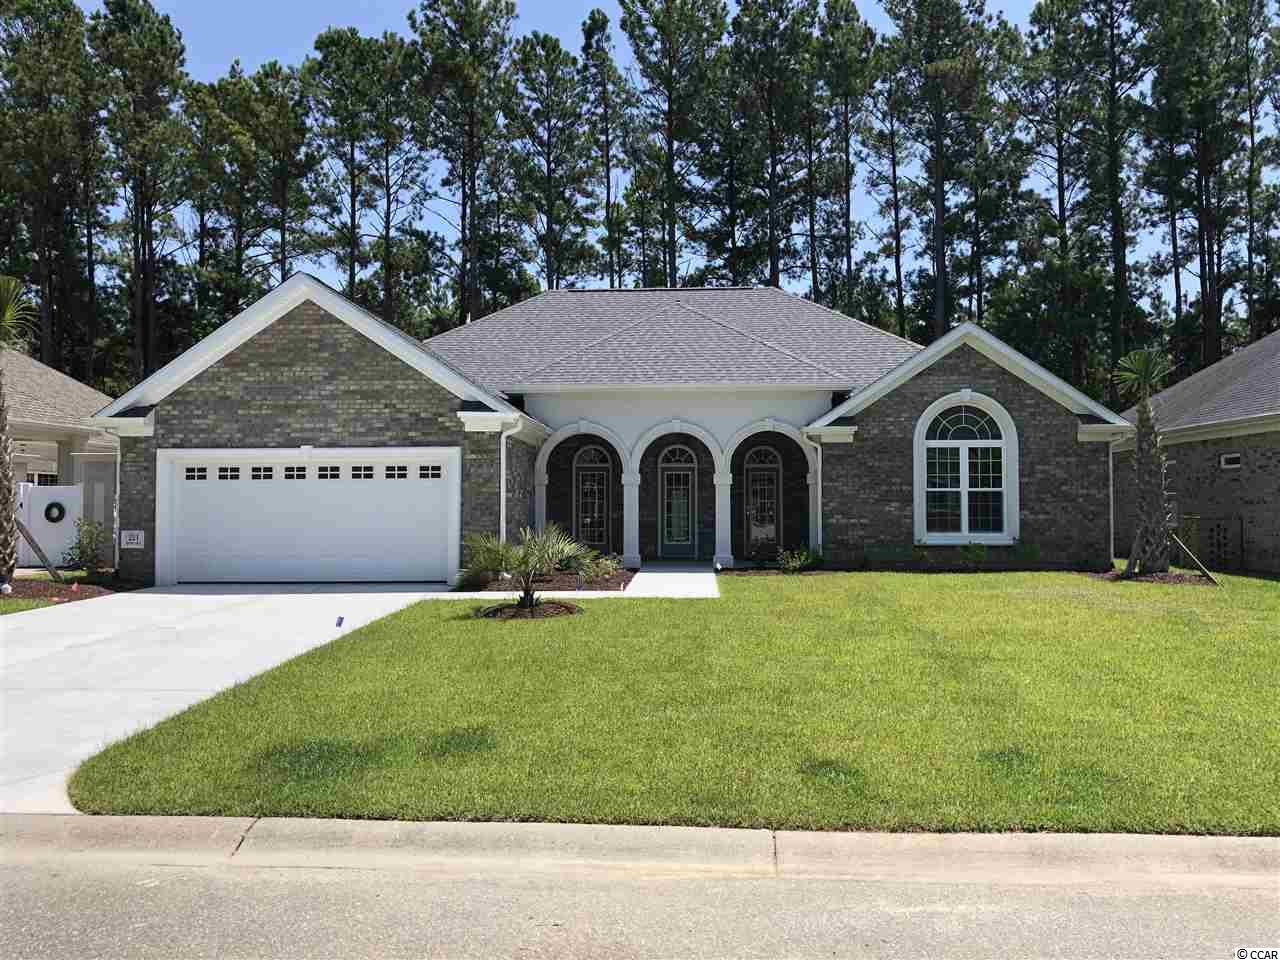 Location, location, location. Located 8 minutes from NMB beachfront and all the dance clubs, 1 mile from the NMB Sports Park, and Hwy 31 which gives you quick access to many of the local golf courses, 5 minutes to Seacoast Hospital, and 4 of the NMB schools. Waterfall is an all brick, gated community with privacy walls on your lot. This new open floor plan home will be ready May of 2020. The exterior features arches on both the front and back porches. Interior features includes 3-4 bedrooms including 1 large room with a vaulted ceiling. Waterfall is built around an 8.5 acre stocked lake and offers fishing or just relaxing in your non gasoline boat or on your paddle board. Amenities also include an amenity center with a swimming pool, a fitness room, a tv/lounge area with a full inside kitchen and outside grill.